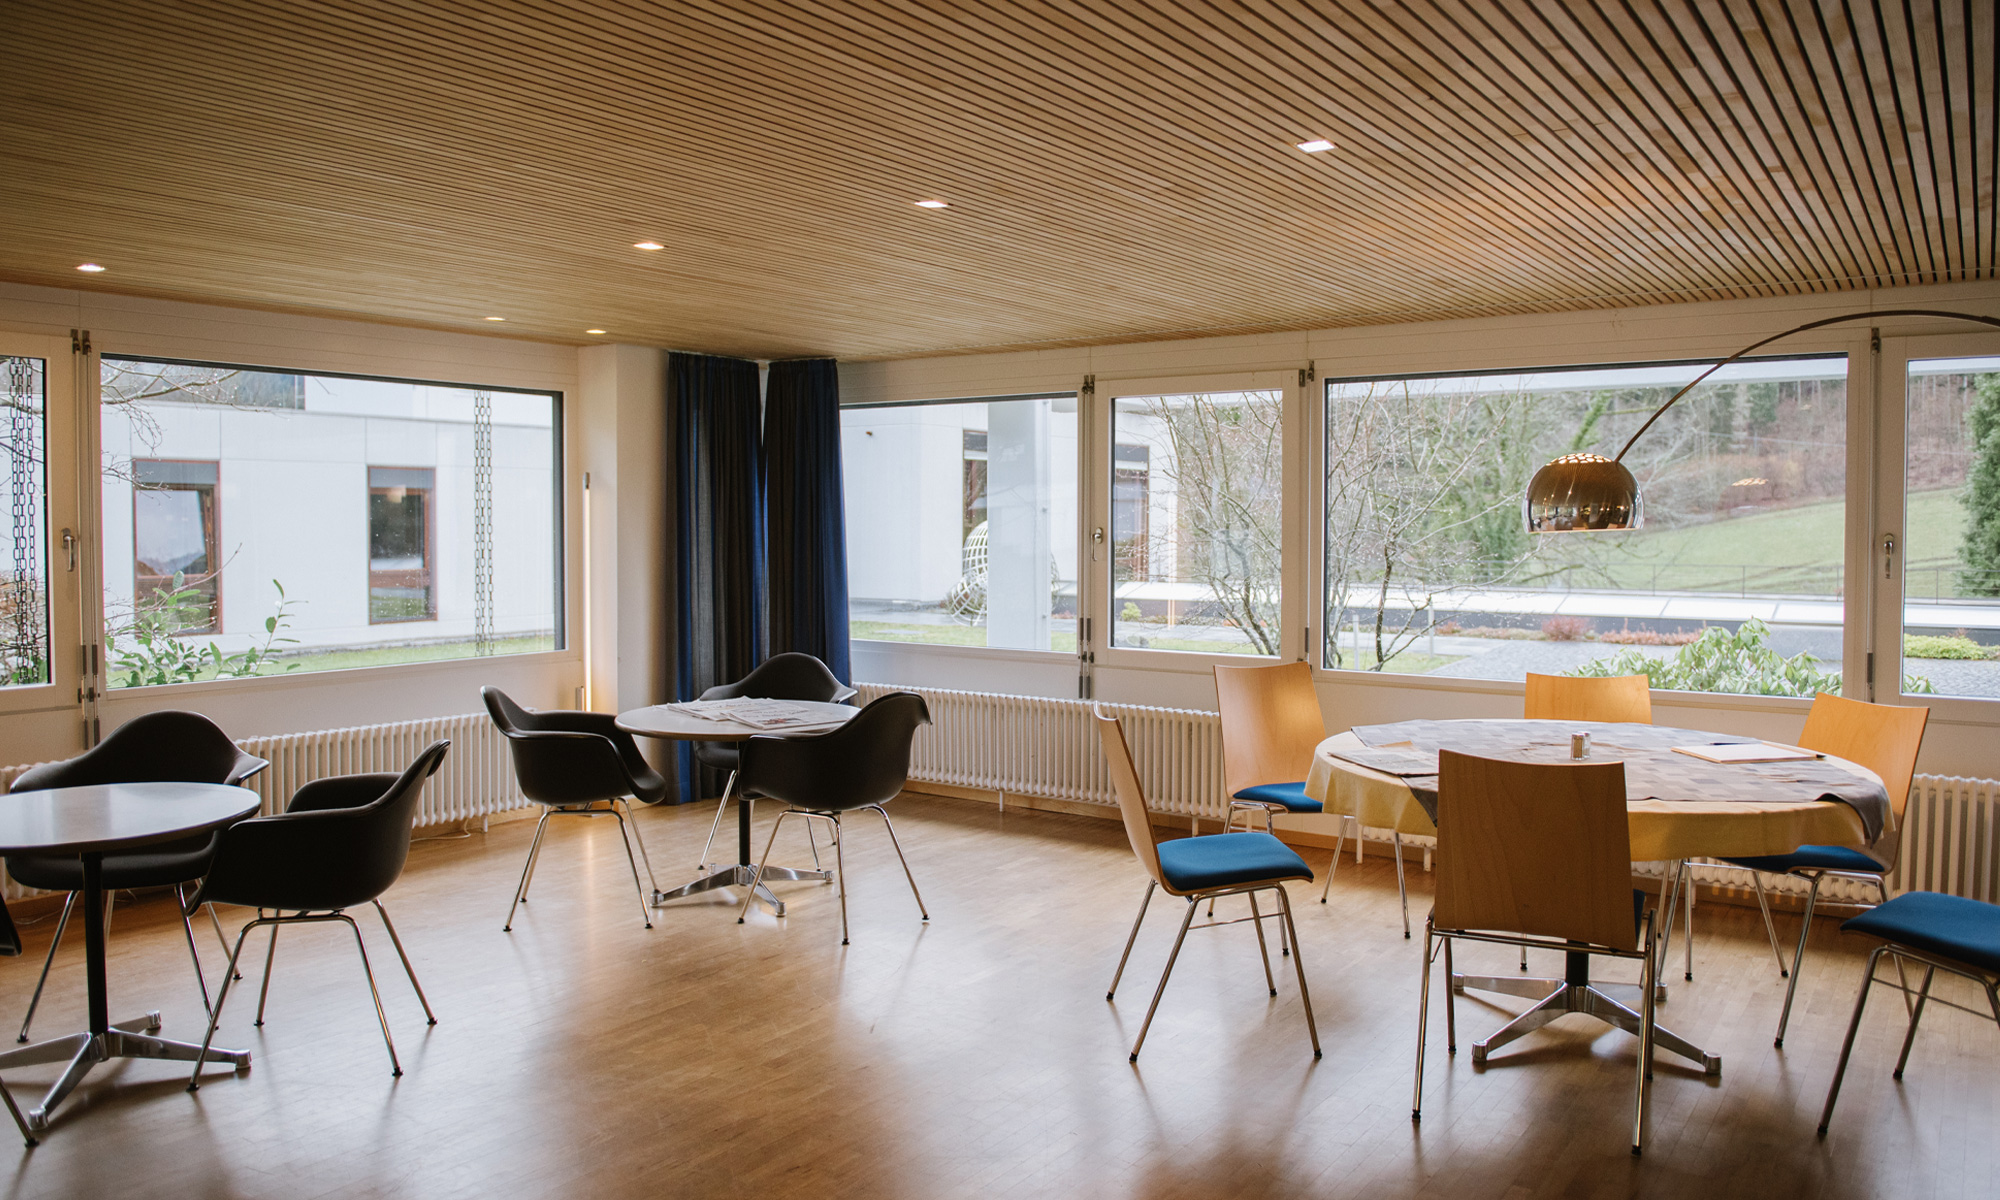 Photo of tables and chairs in a room at Oberwolfach